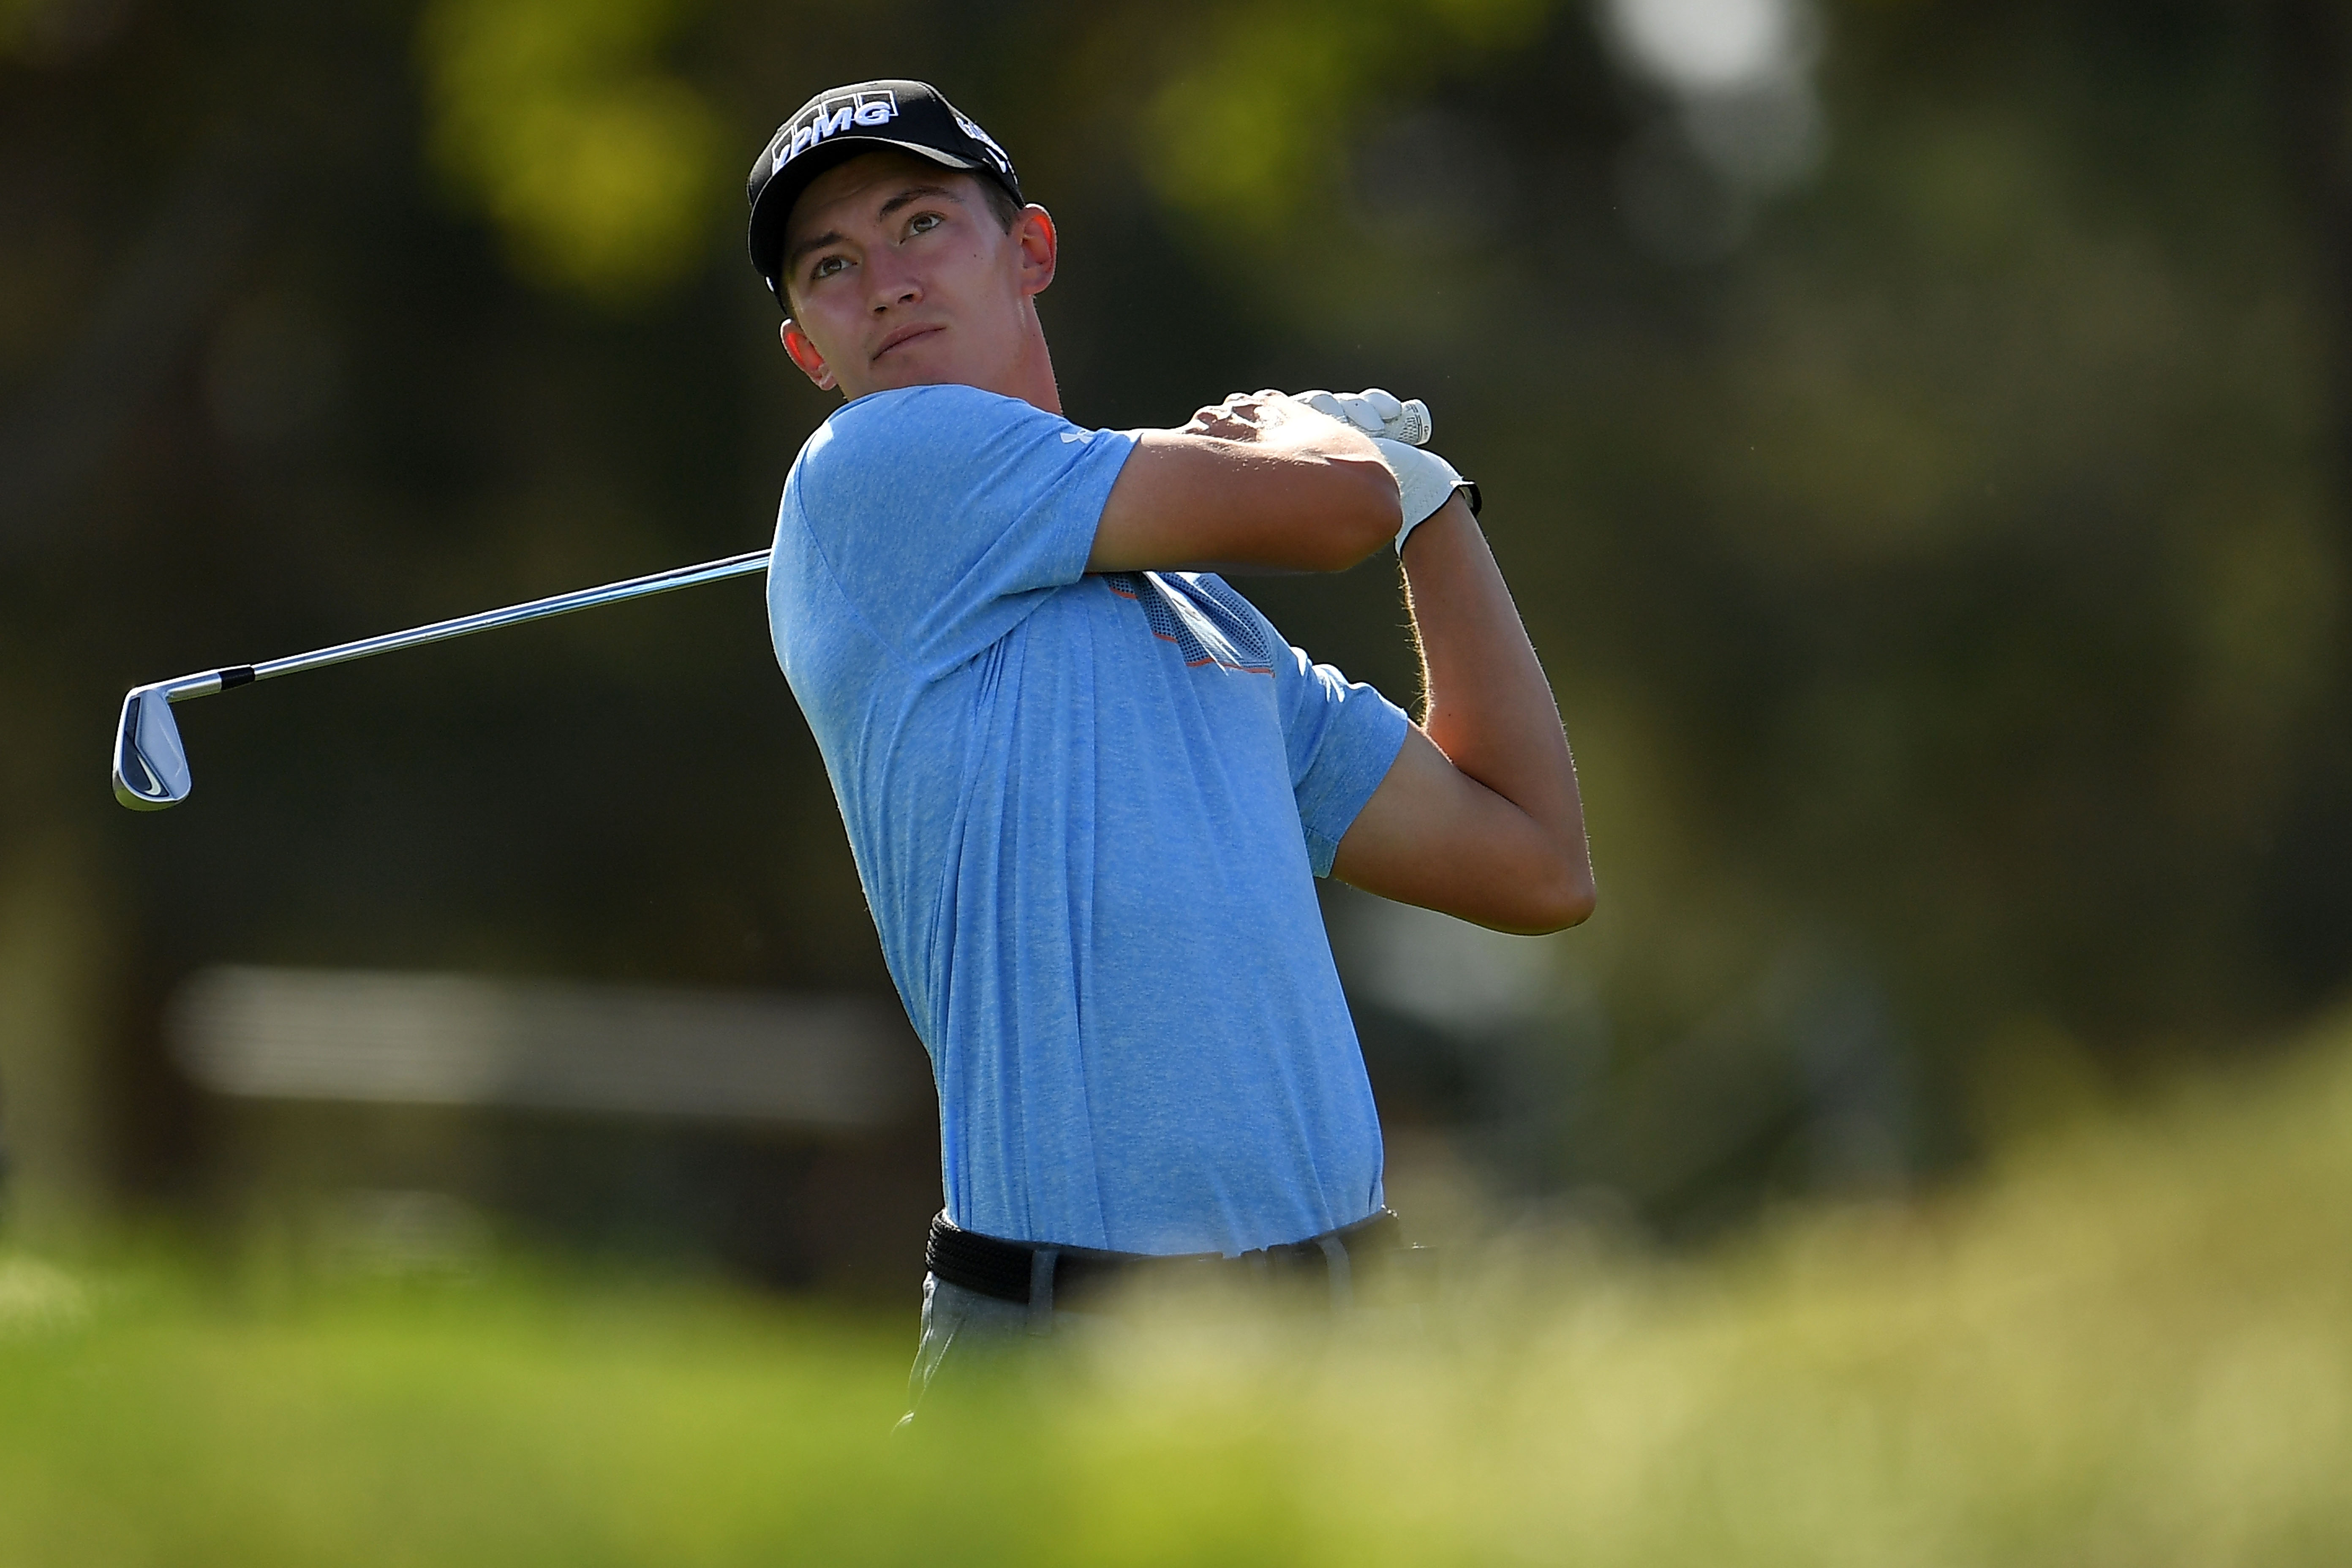 PGA TOUR statement on Mark Hensby